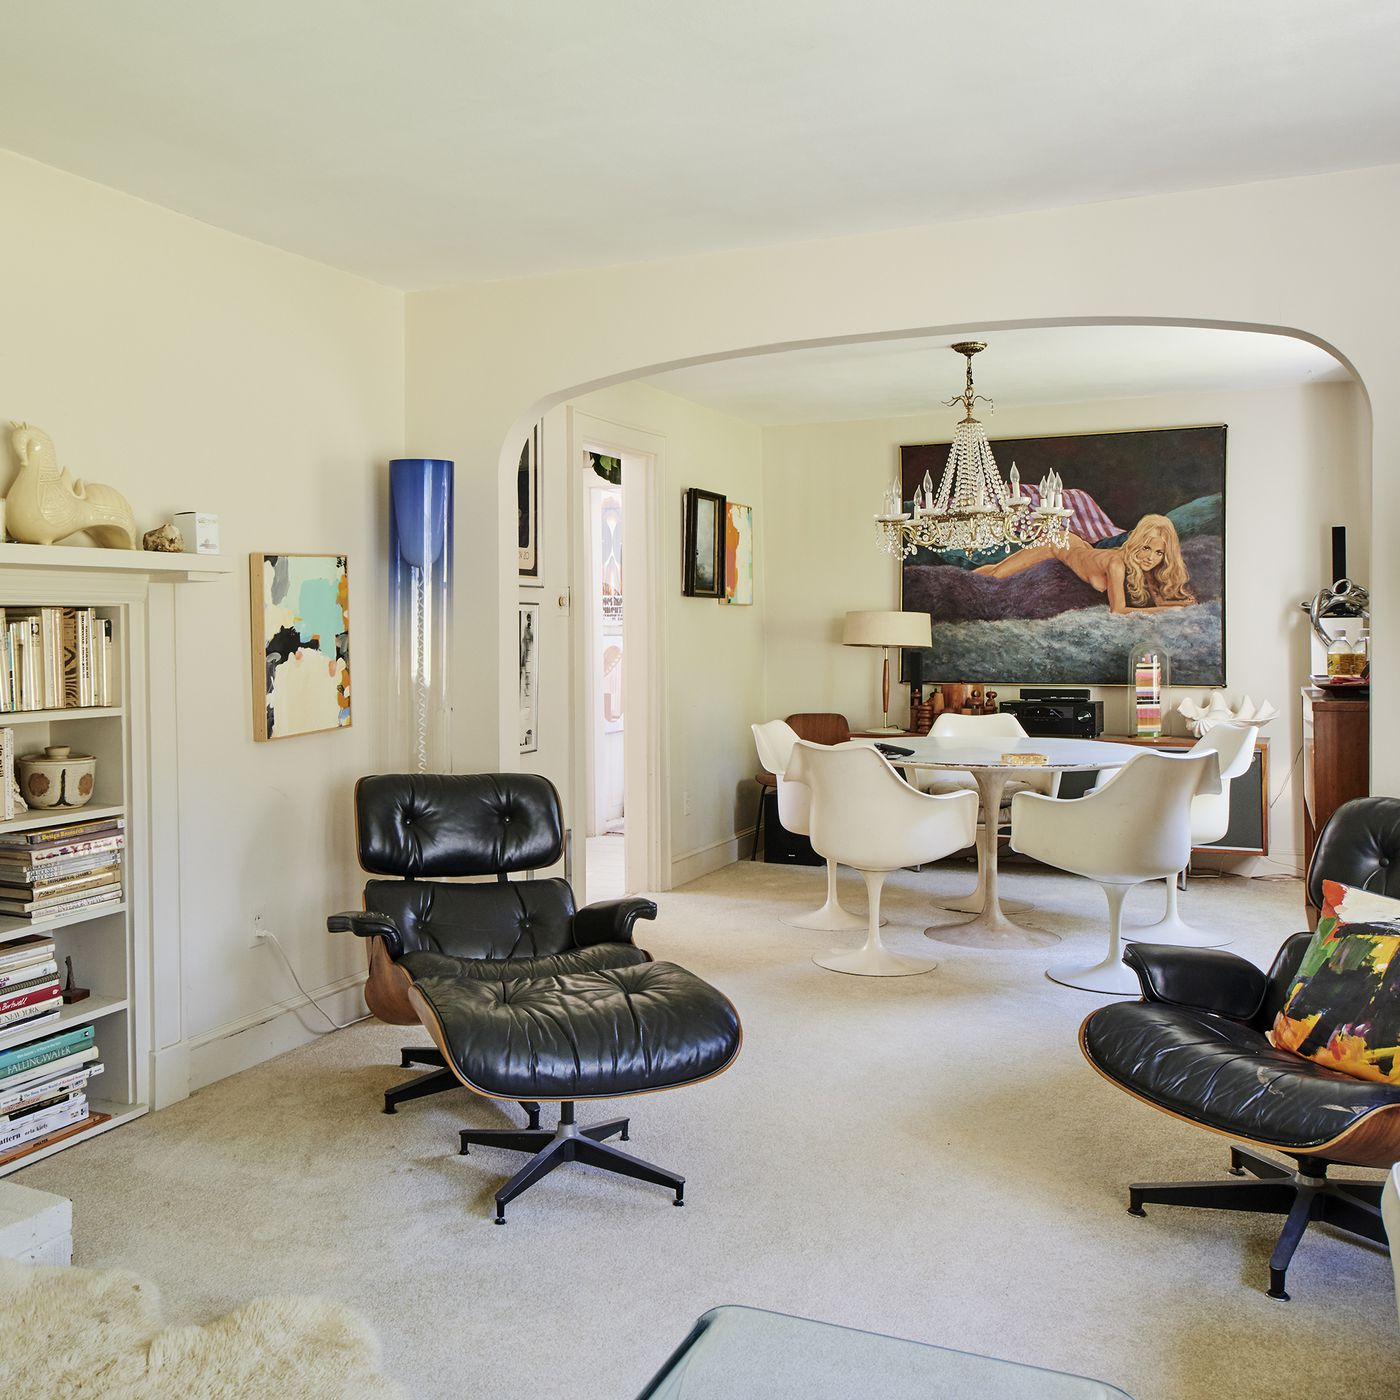 Inside Wary Meyers, a groovy live-work home carved from a classic ...